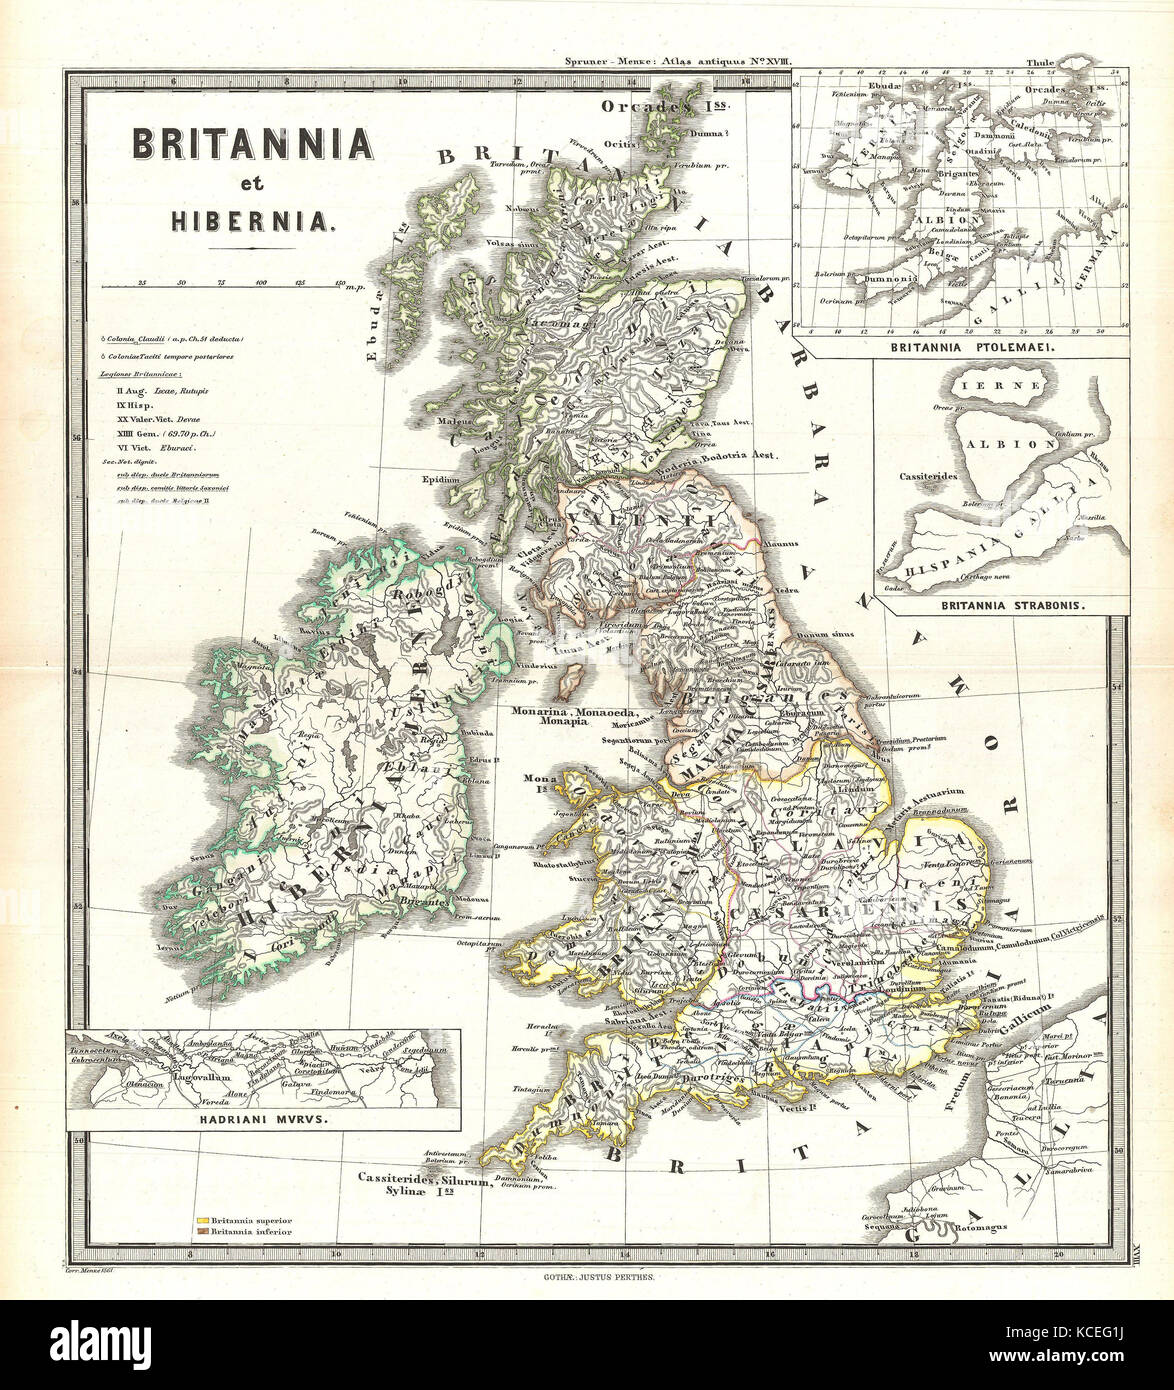 Map Of England Scotland And Ireland.1865 Spruner Map Of The British Isles England Scotland Ireland